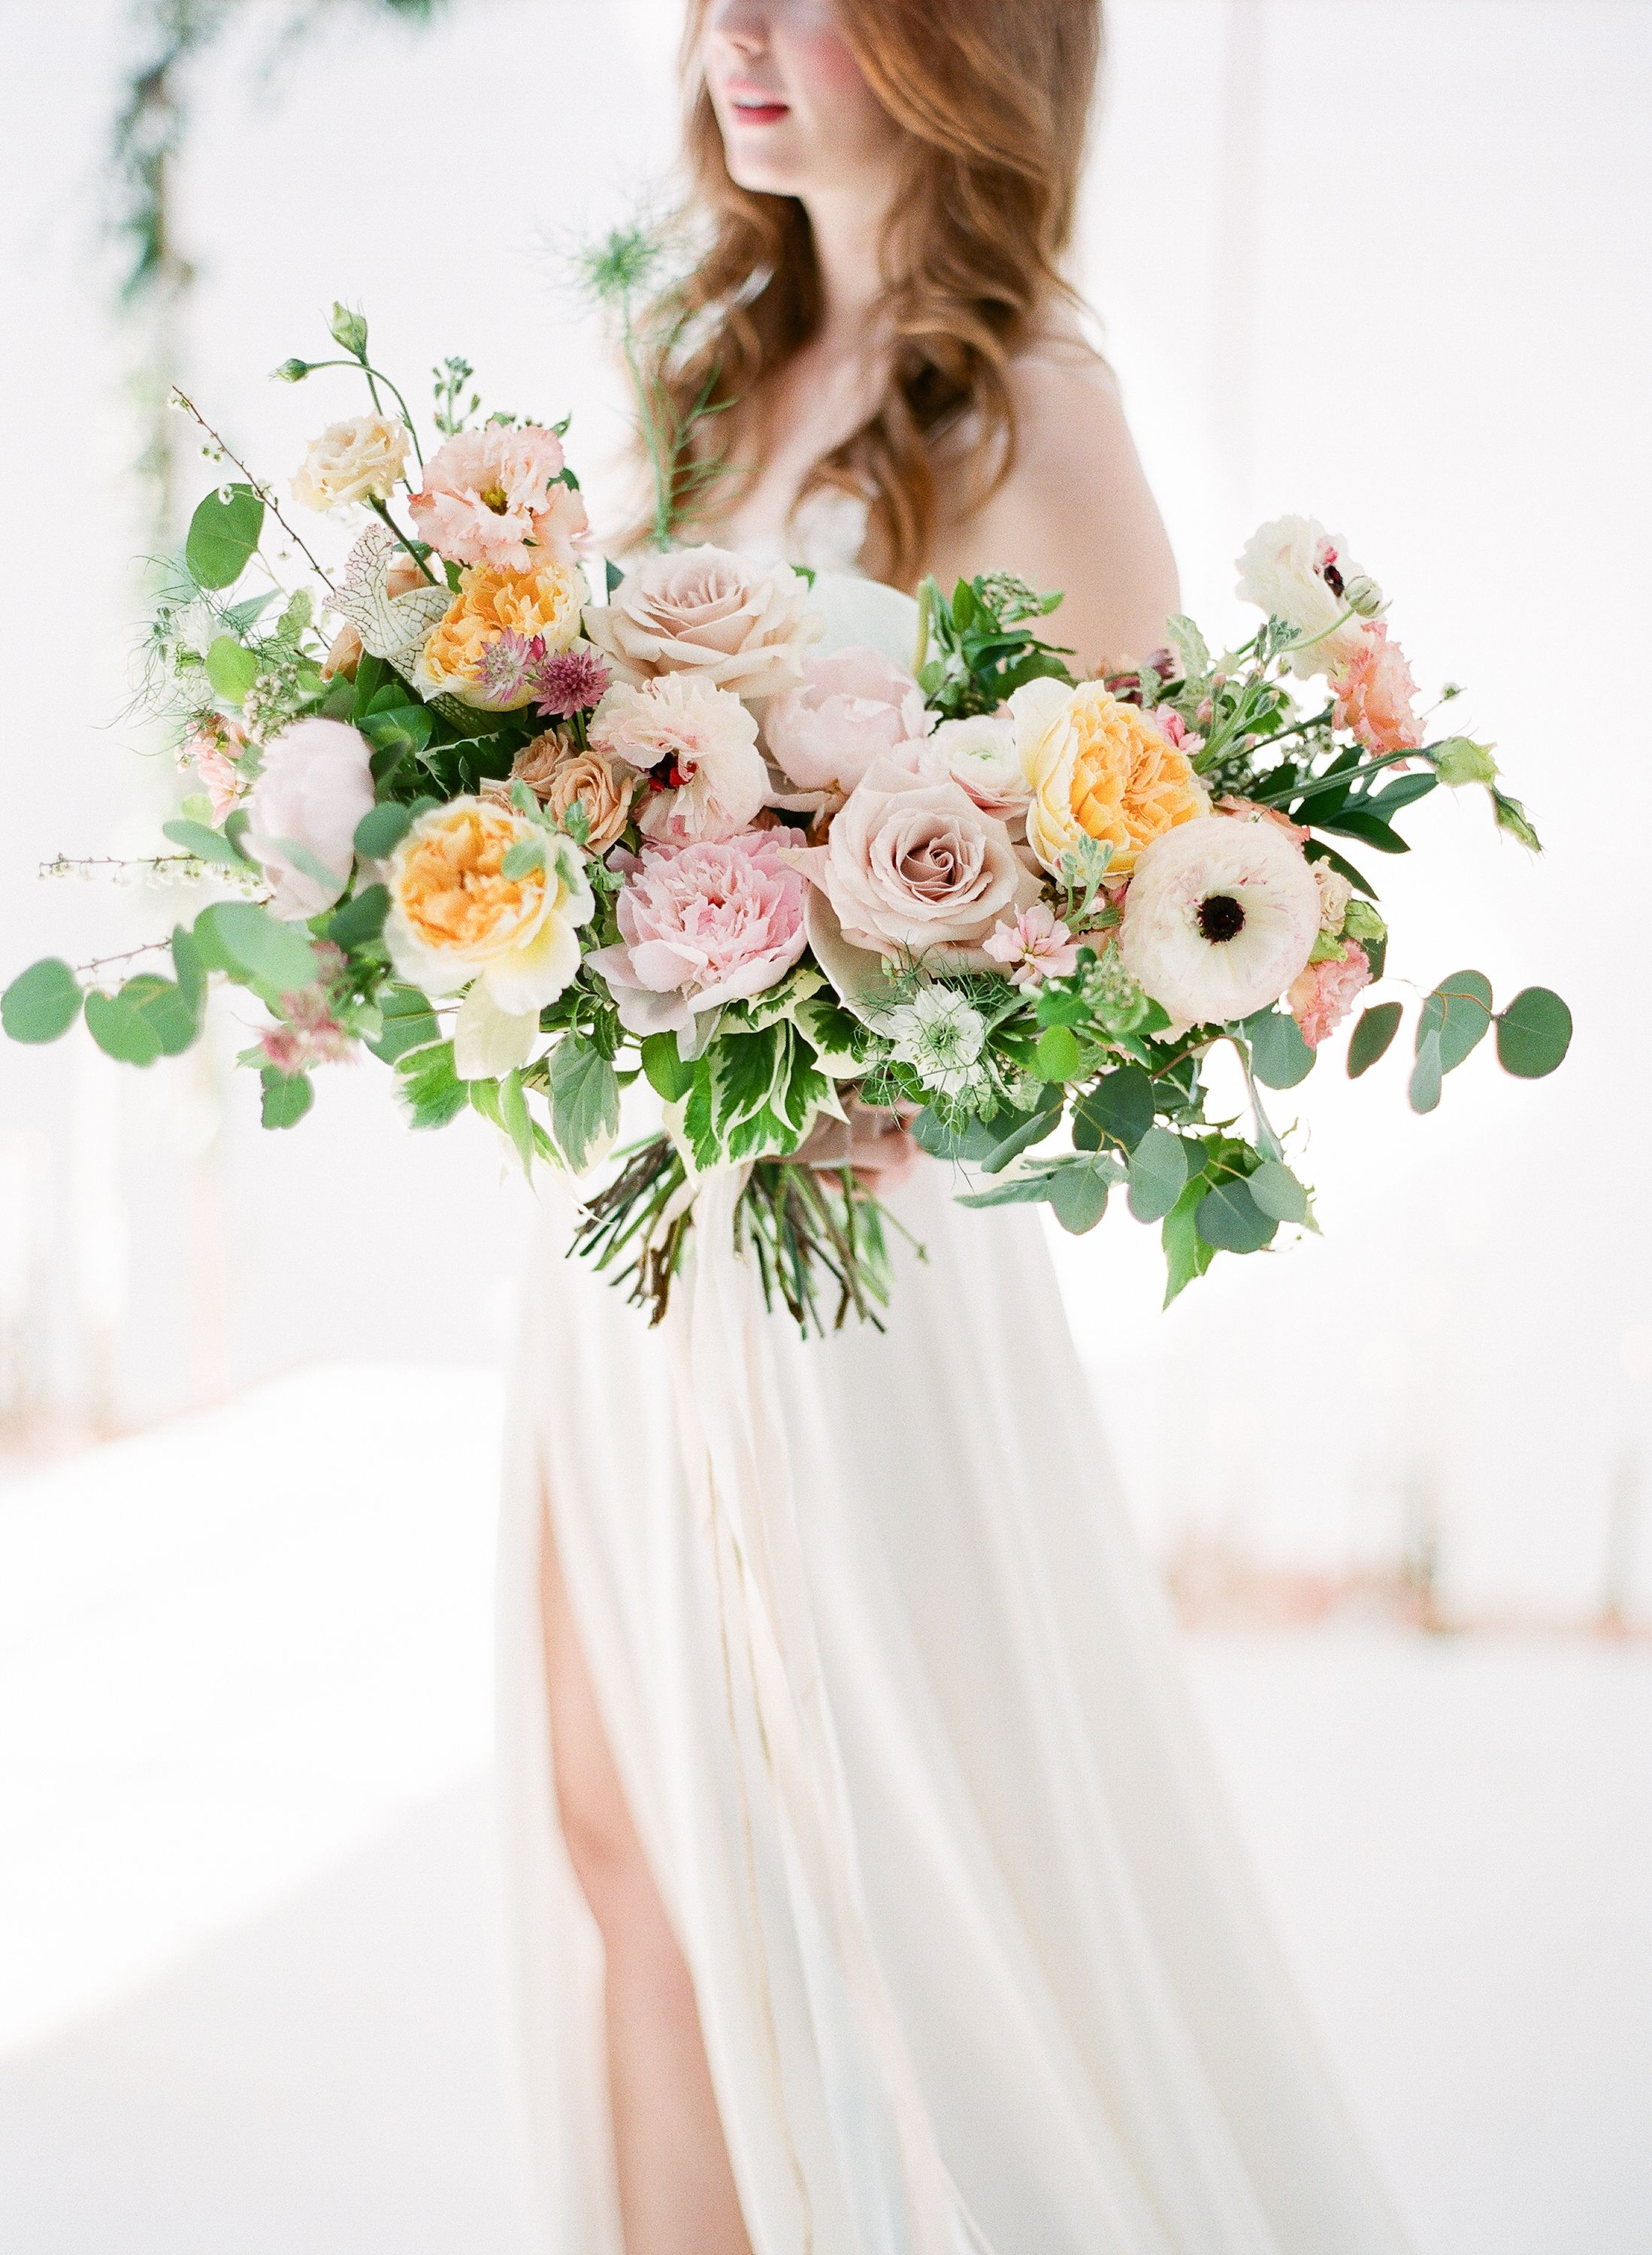 30 best wedding flower bouquets chic ideas for bridal flower 30 best wedding flower bouquets chic ideas for bridal flower arrangements dhlflorist Gallery